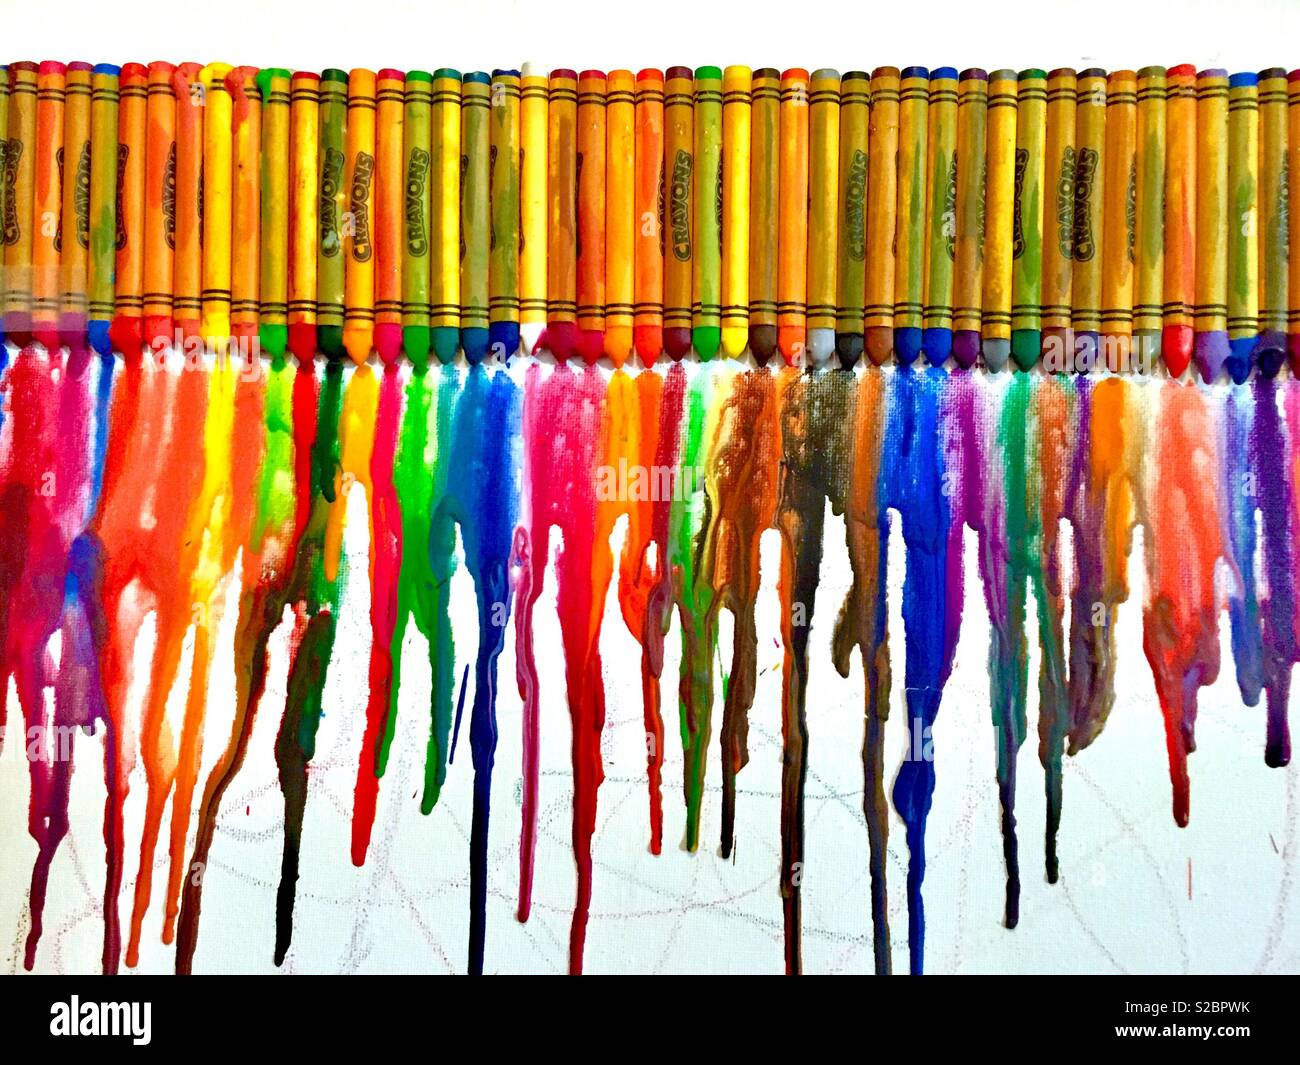 Melted crayon artwork. - Stock Image